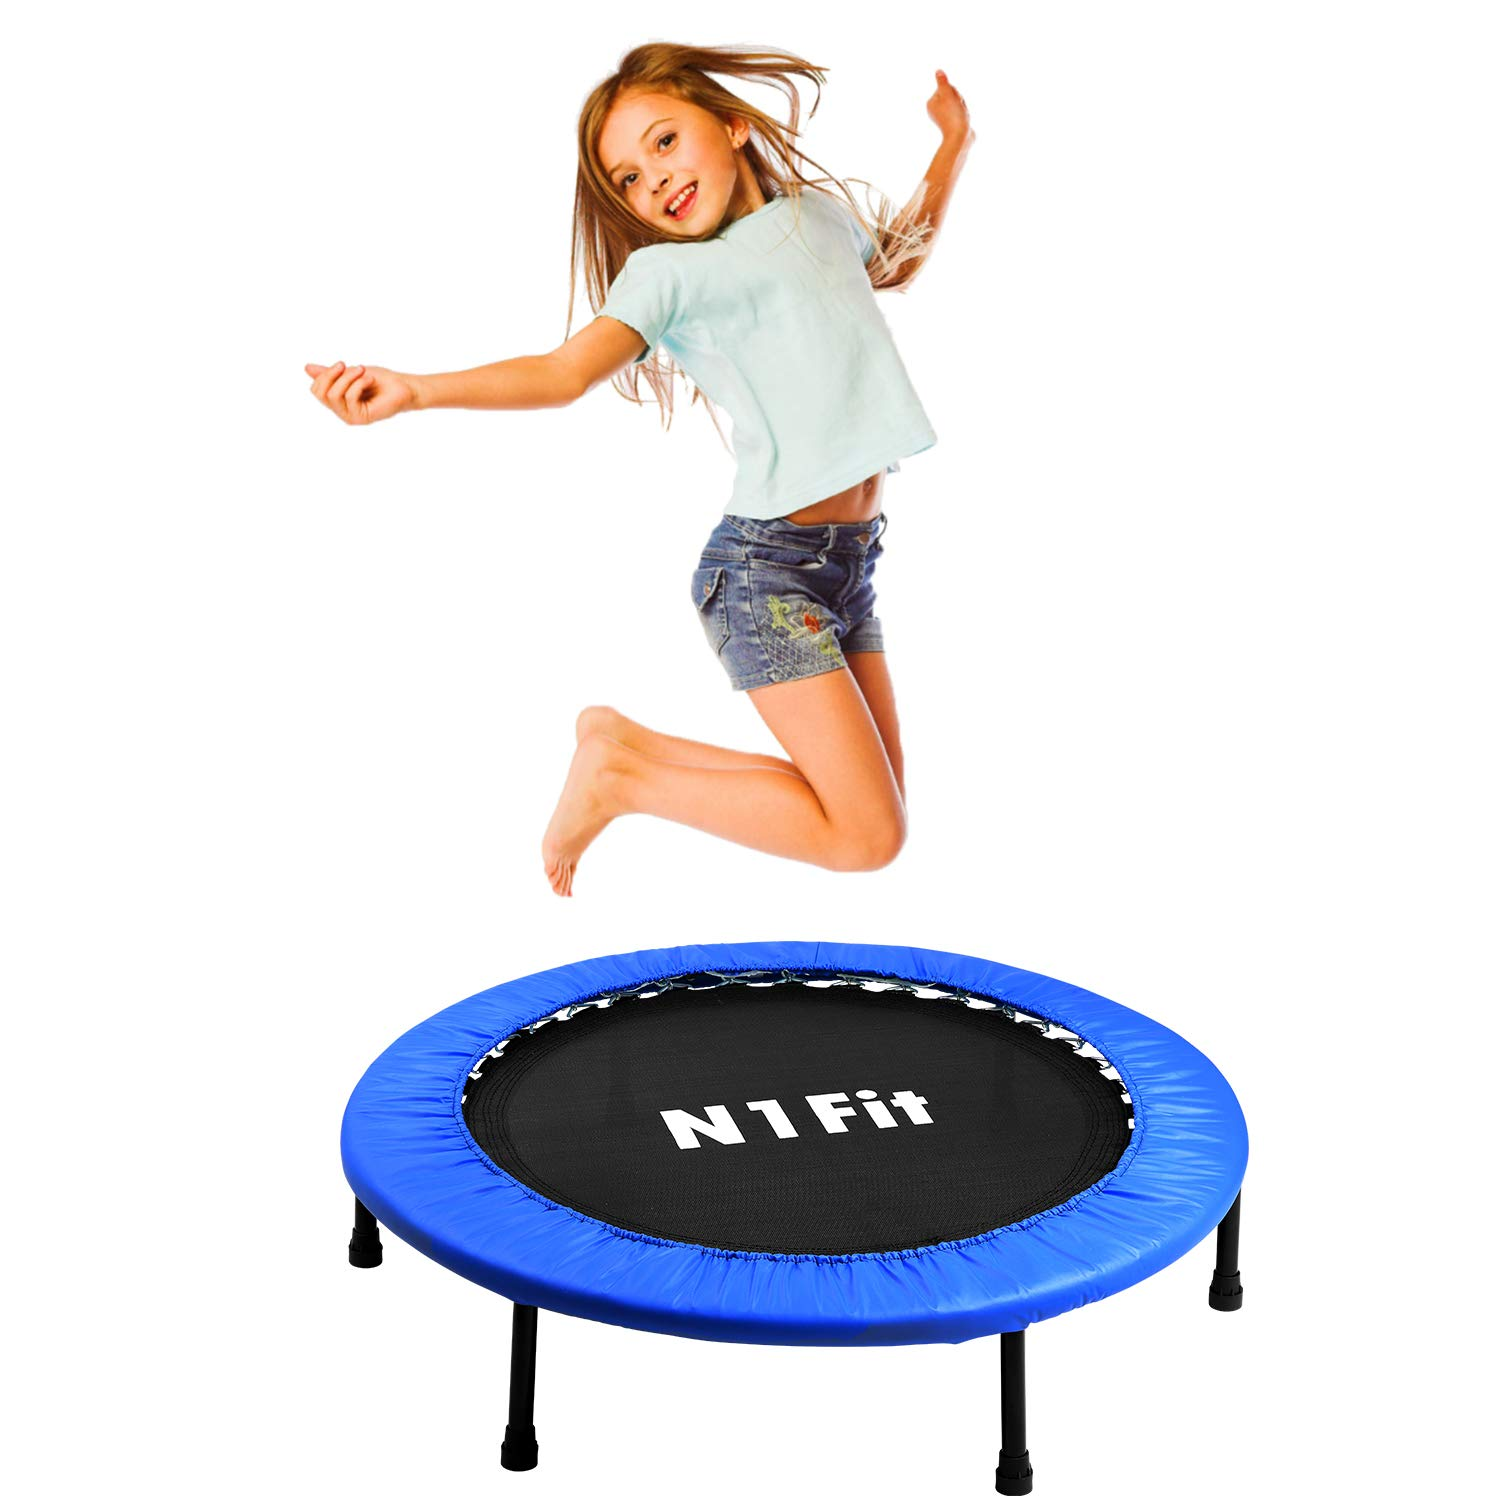 N1Fit Mini Trampoline for Adults - Exercise Trampoline, Mini Trampolines, Personal Trampoline, Trampoline Small Indoor, Rebounding Tiny Trampoline with Springs System for Home Cardio Workouts 40'' by N1Fit (Image #5)